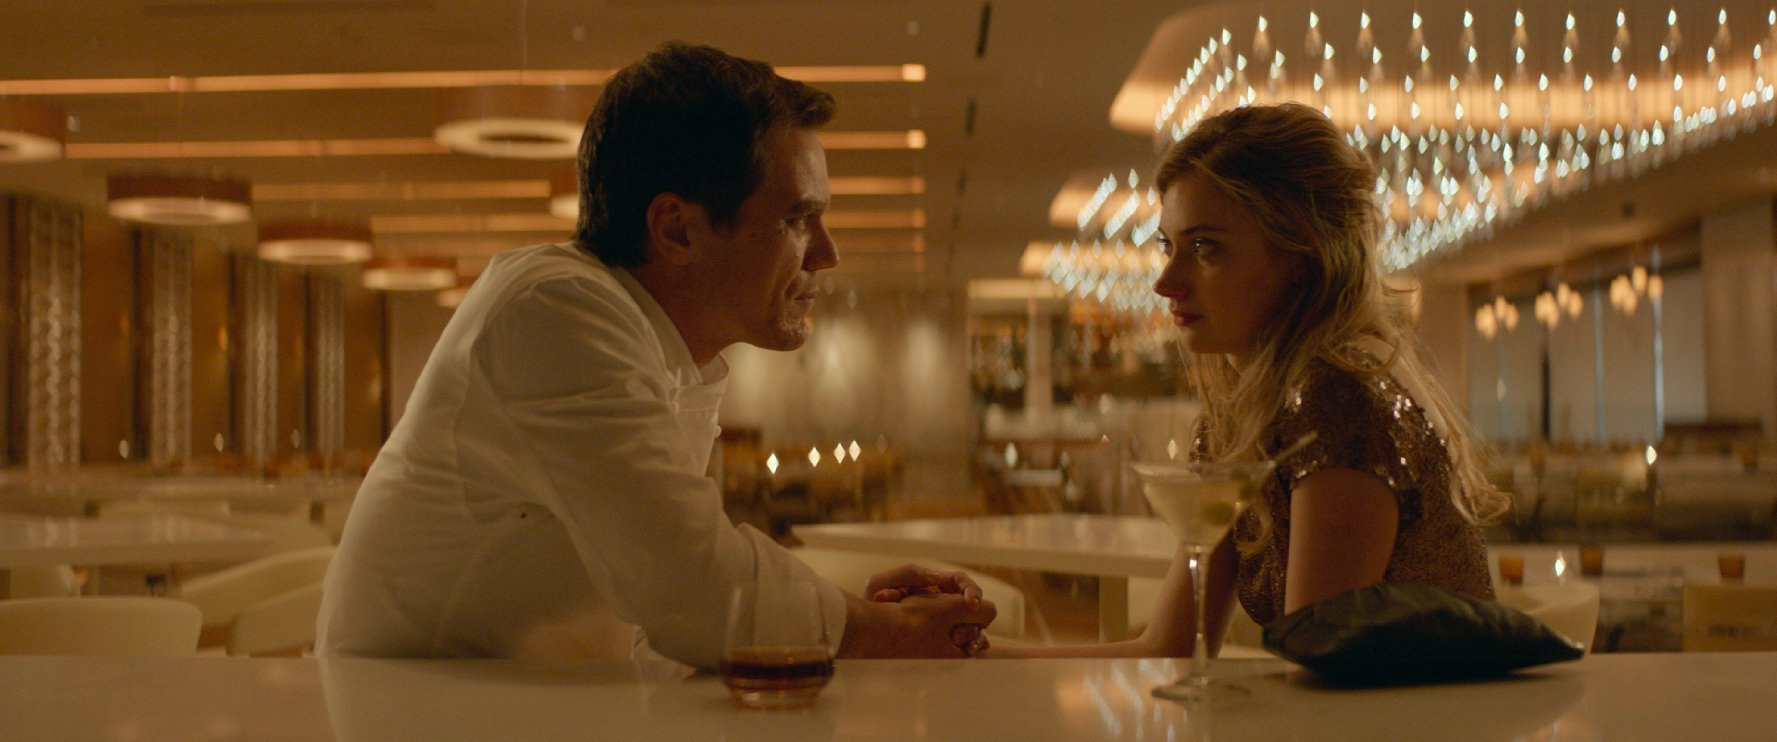 Film Review: Occasionally Lazy Storytelling in 'Frank & Lola' Is Overcome by Shannon and Poots's Chemistry